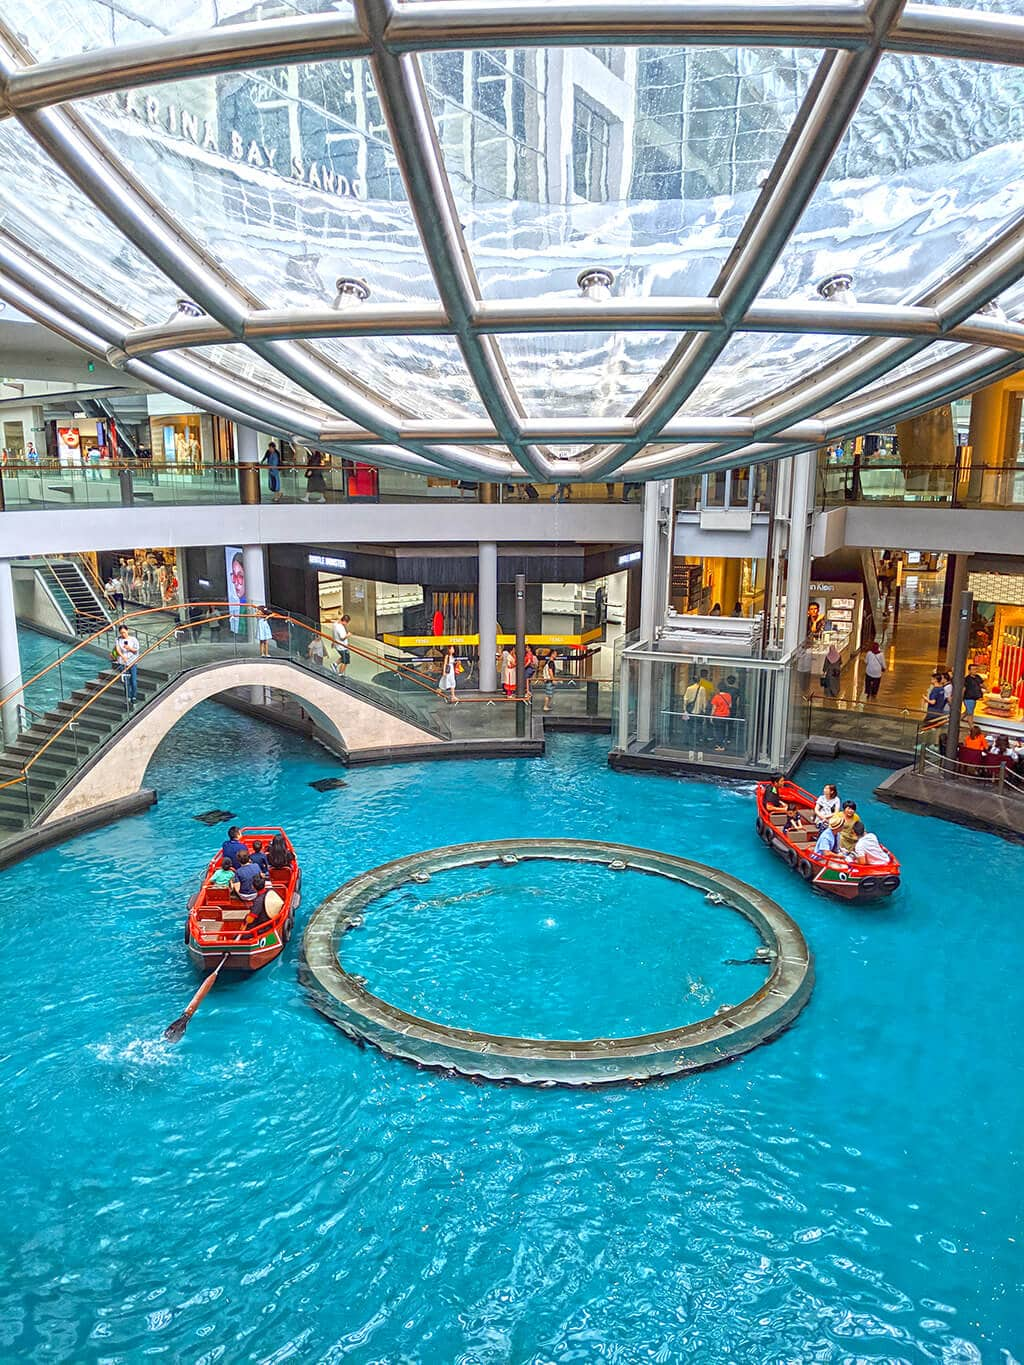 Gondola within the Shoppes at Marina Bay Sands